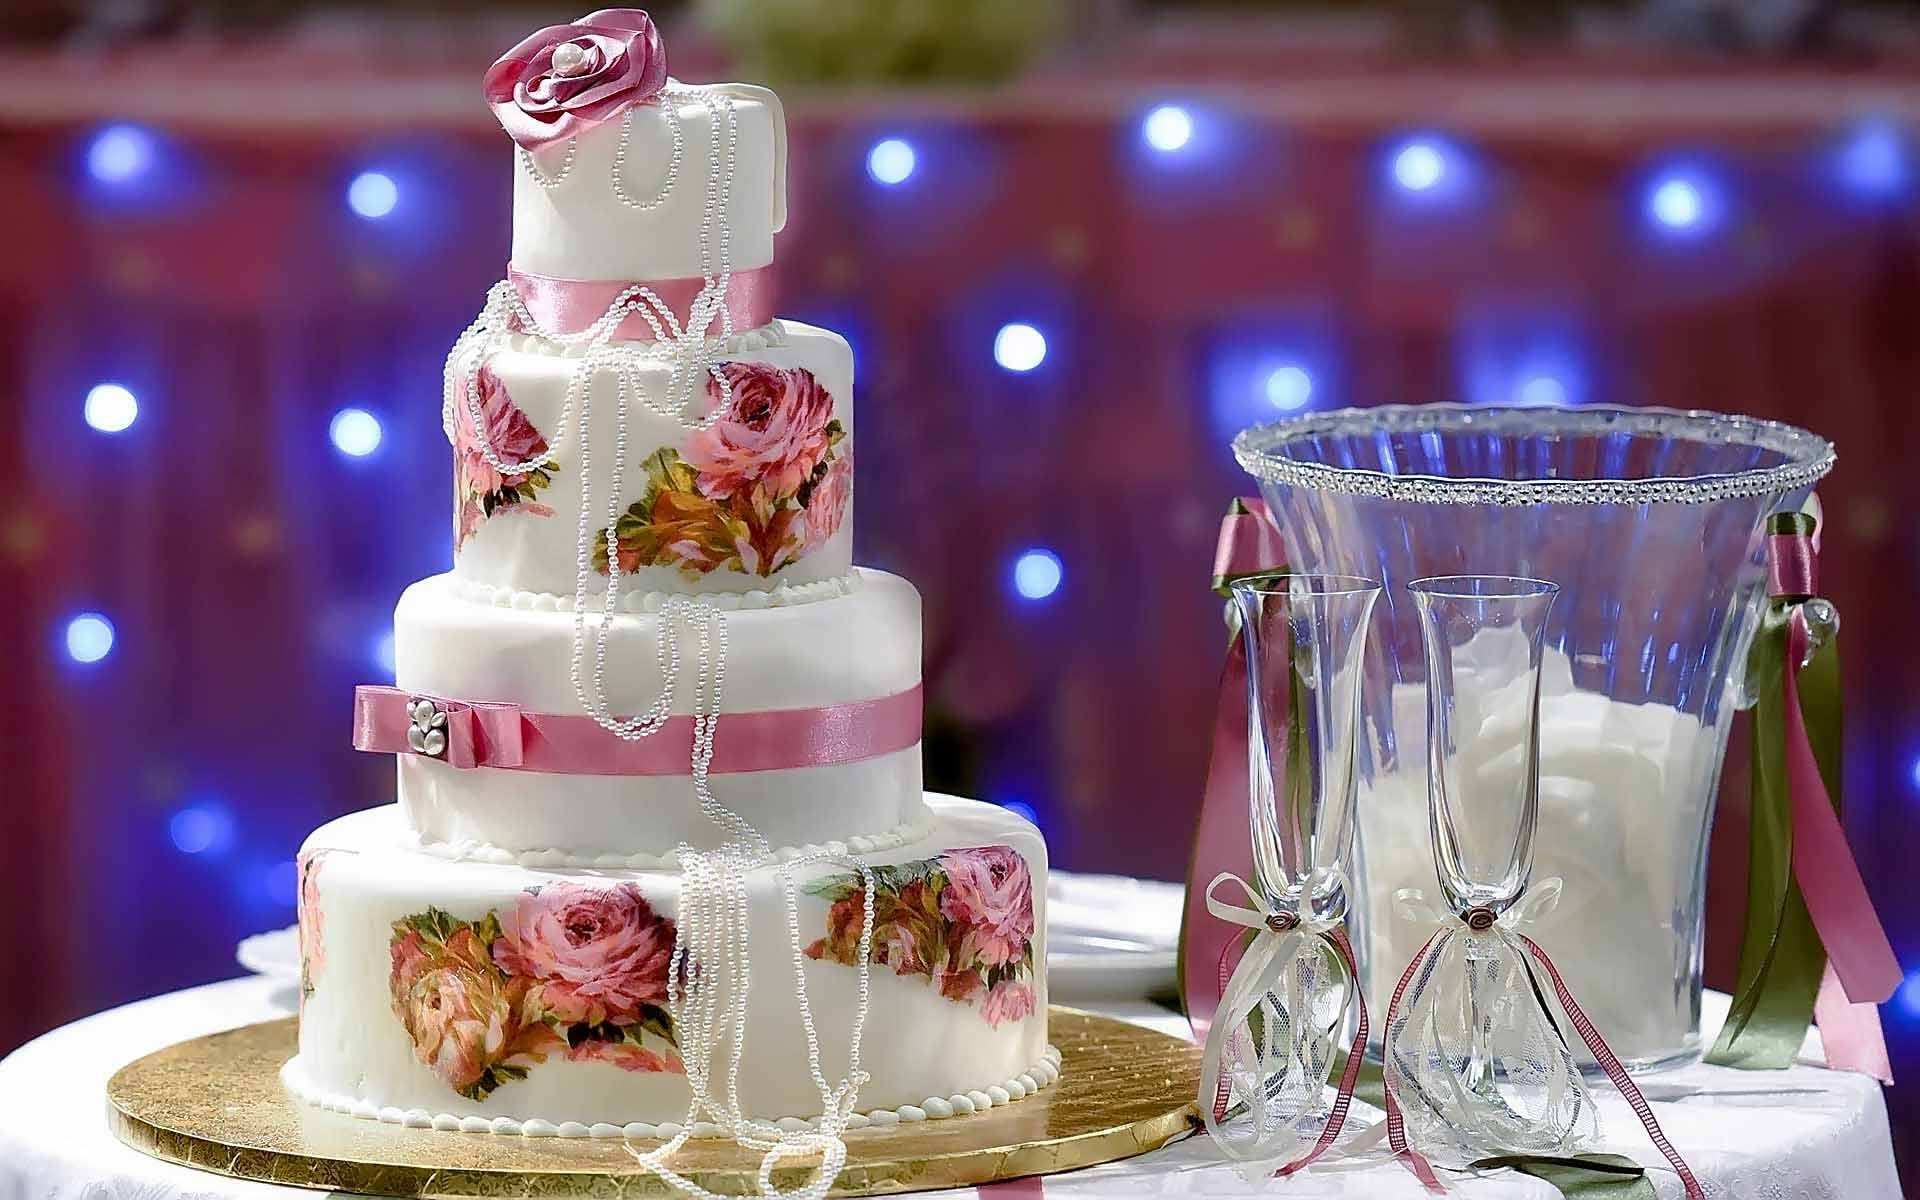 Vintage-Chic-Wedding-Cake-Painted-With-Embroidered-Looking-Flower-Details-And-Draped-In-Pearls